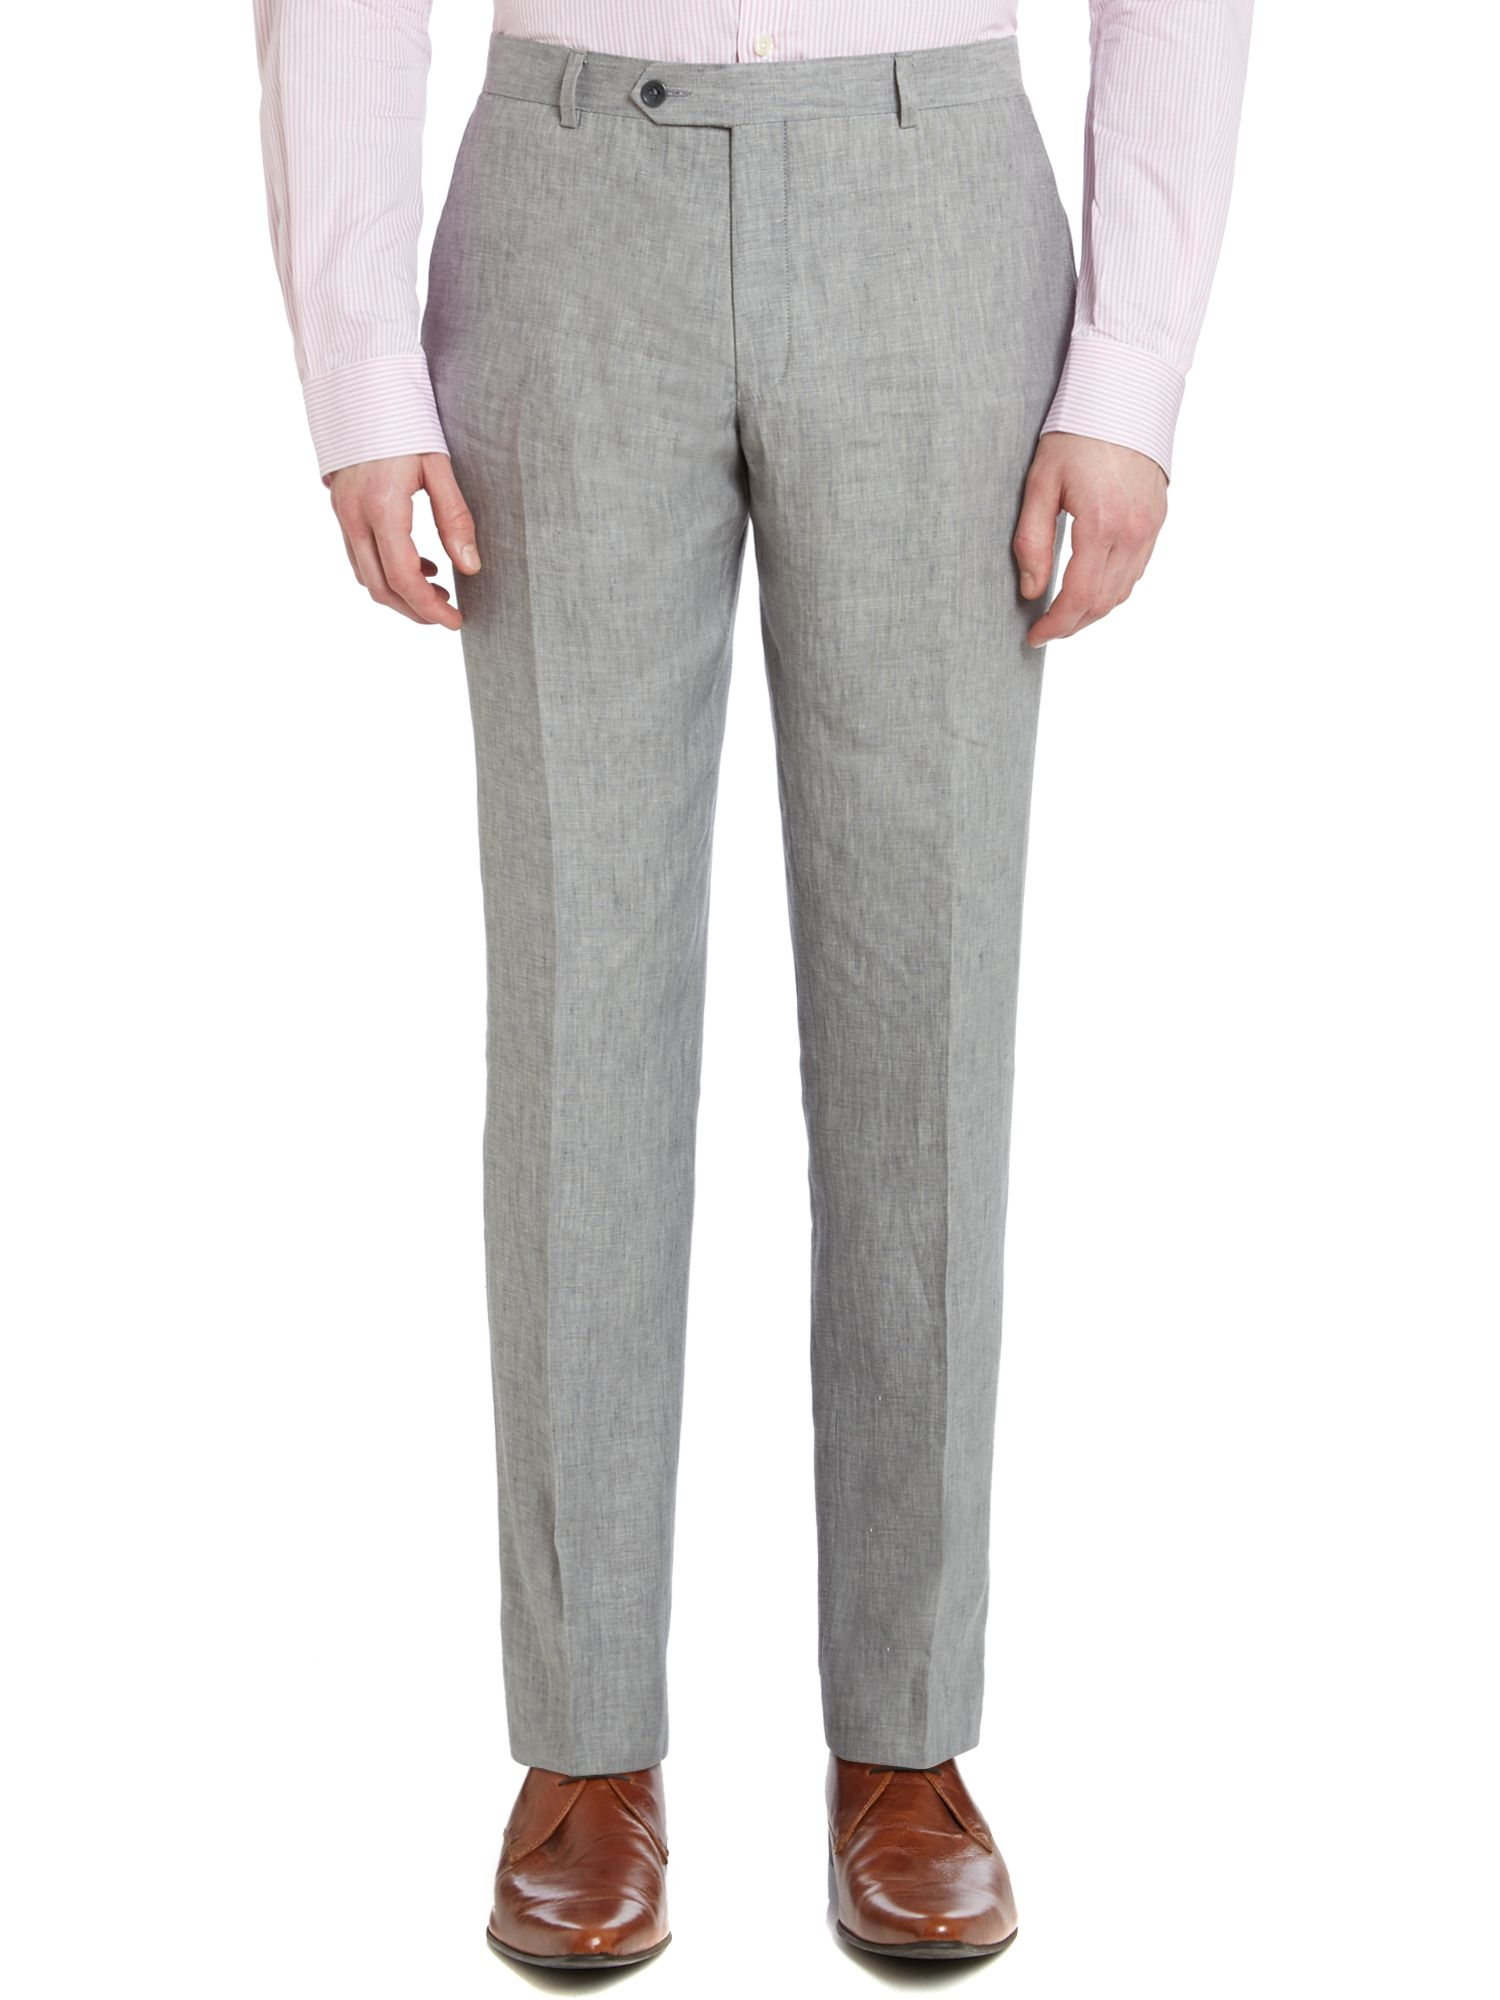 Lyon linen suit trousers